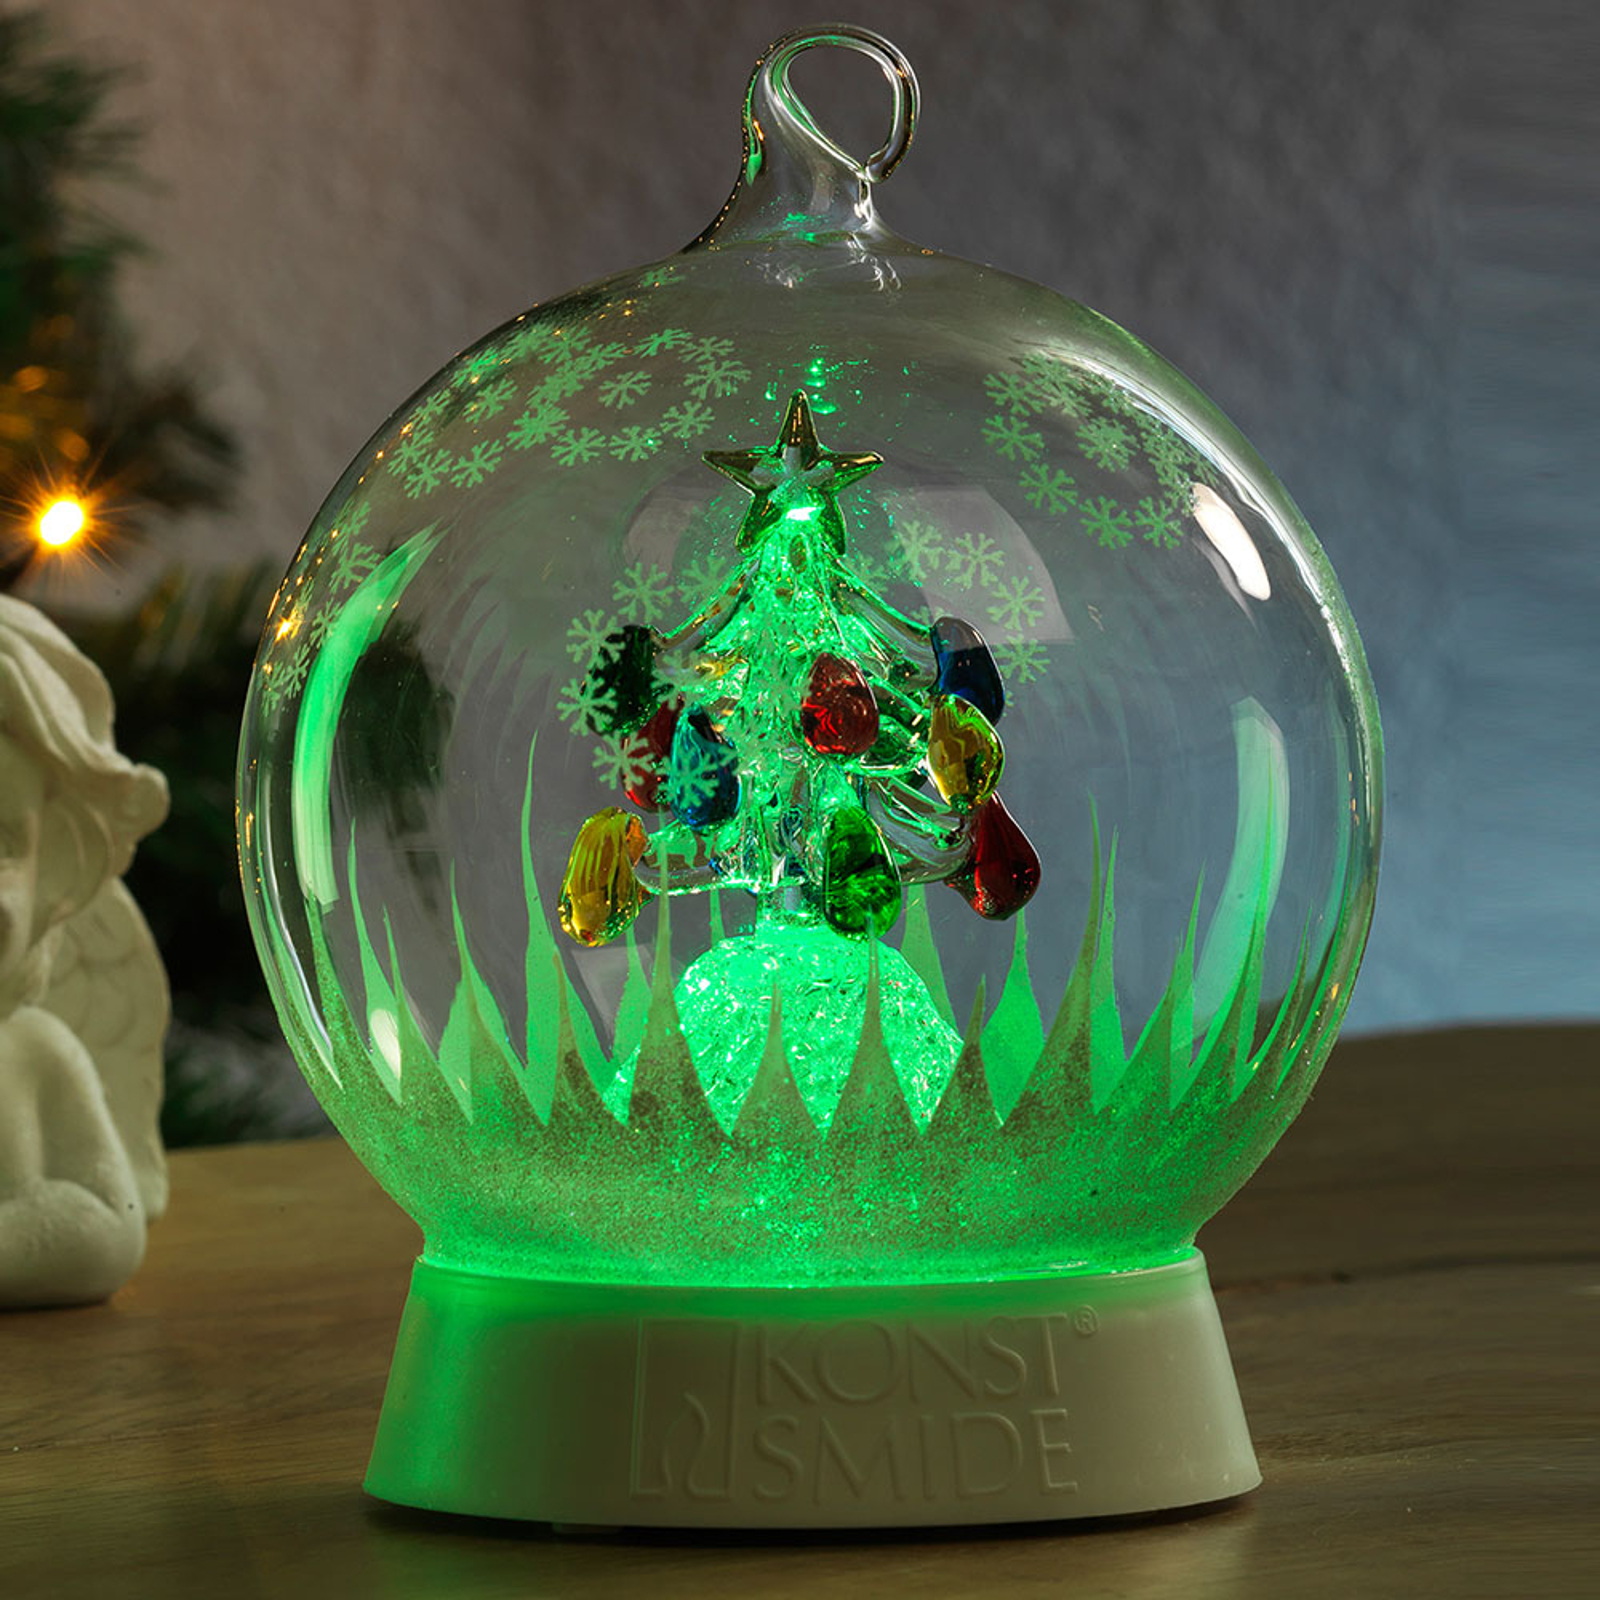 Christmas tree glass bauble LED decorative light_5524984_1